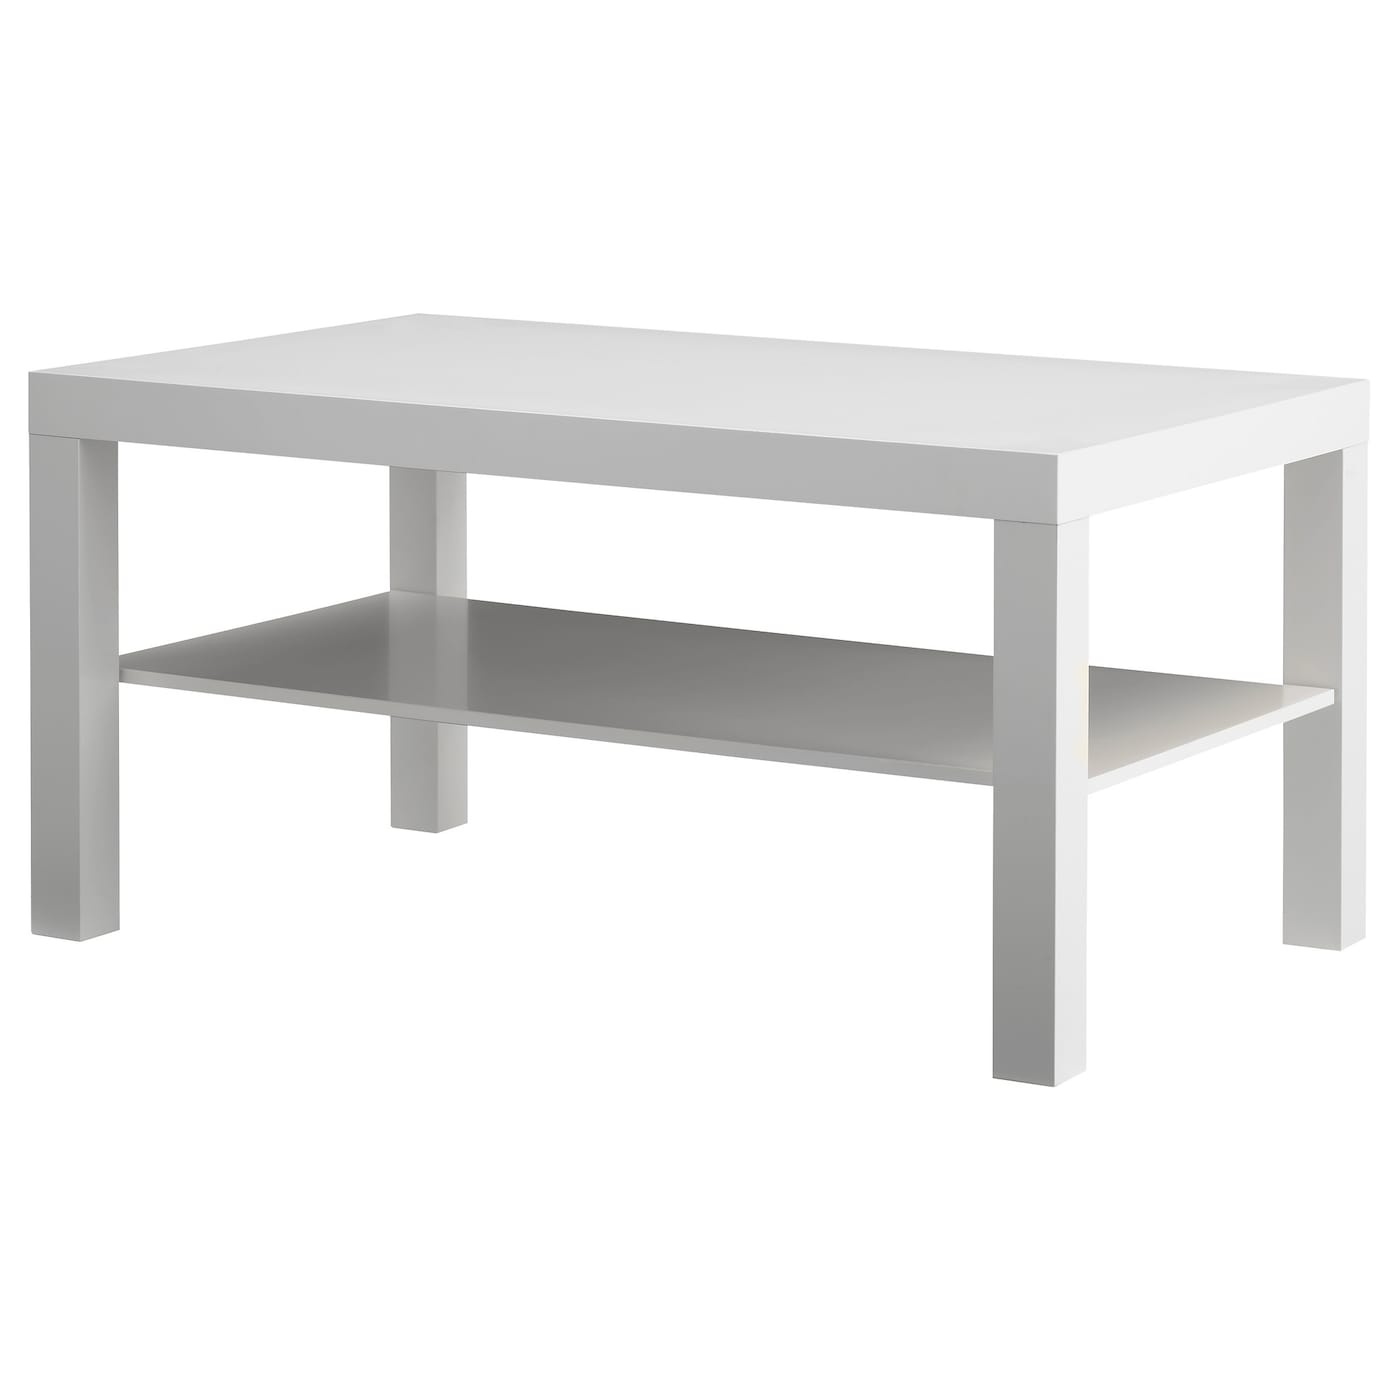 Lack coffee table white 90x55 cm ikea - Ikea table basse lack ...